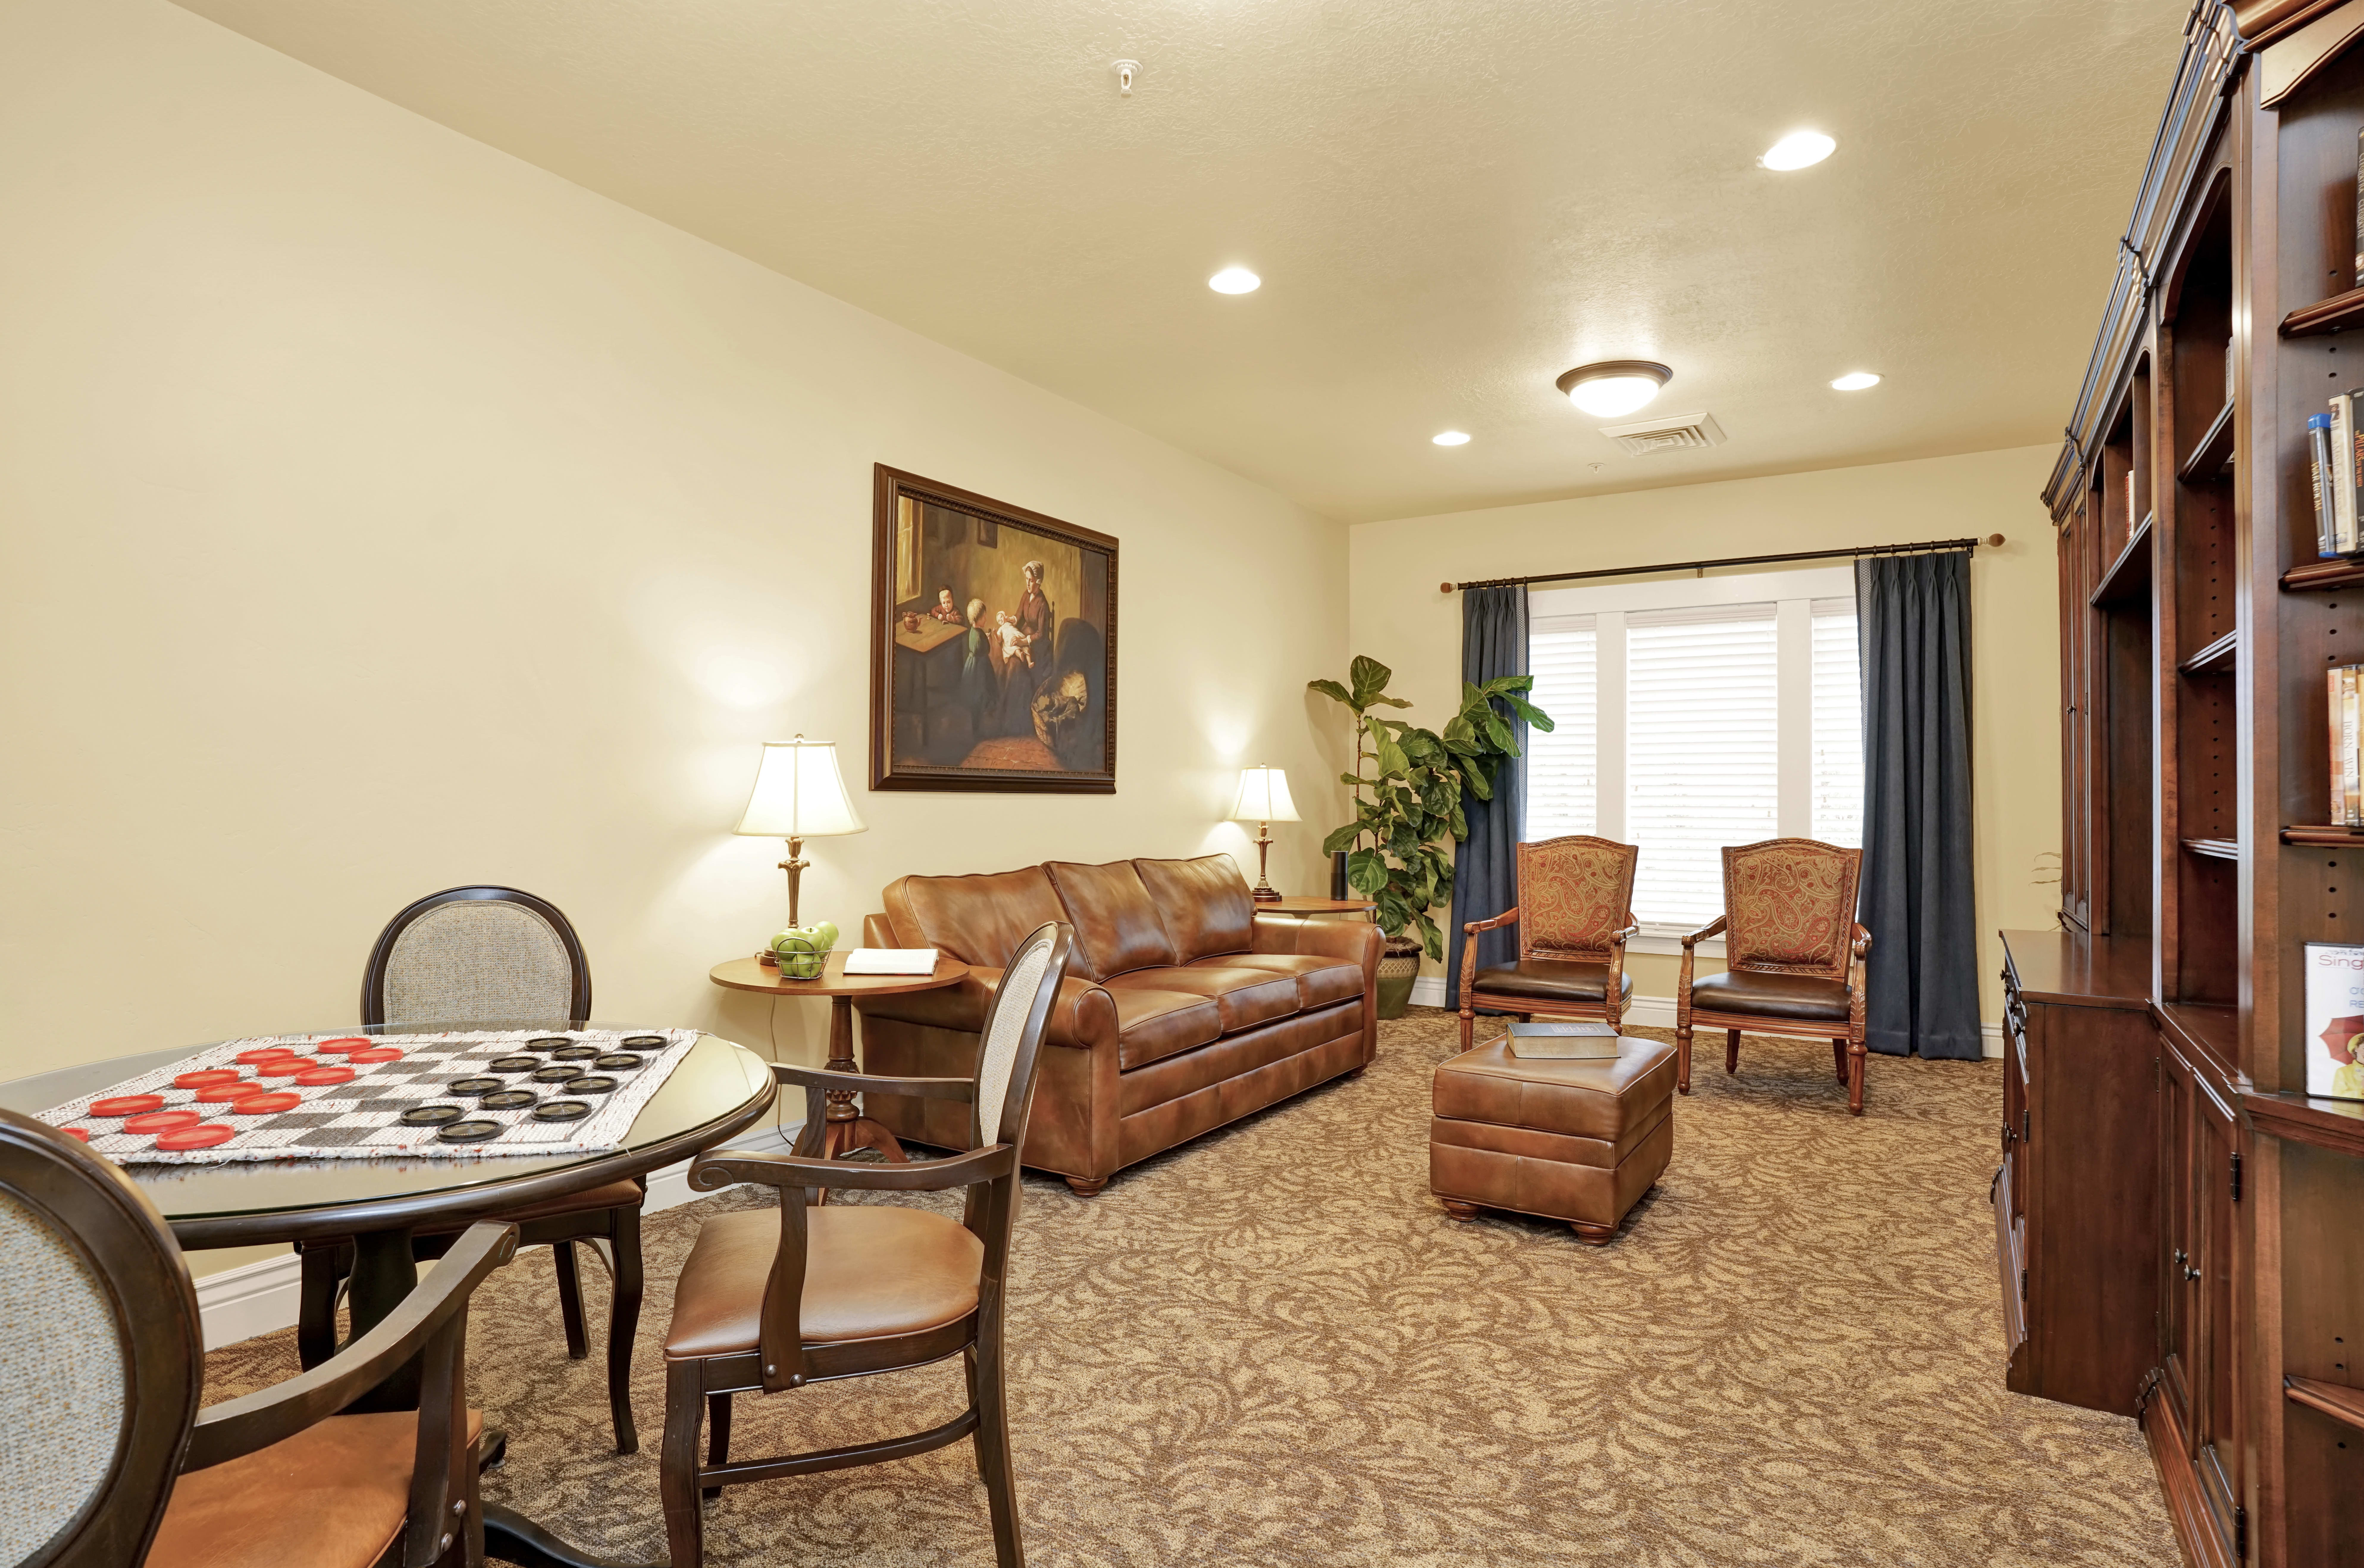 Amenities at the senior living community in Highland